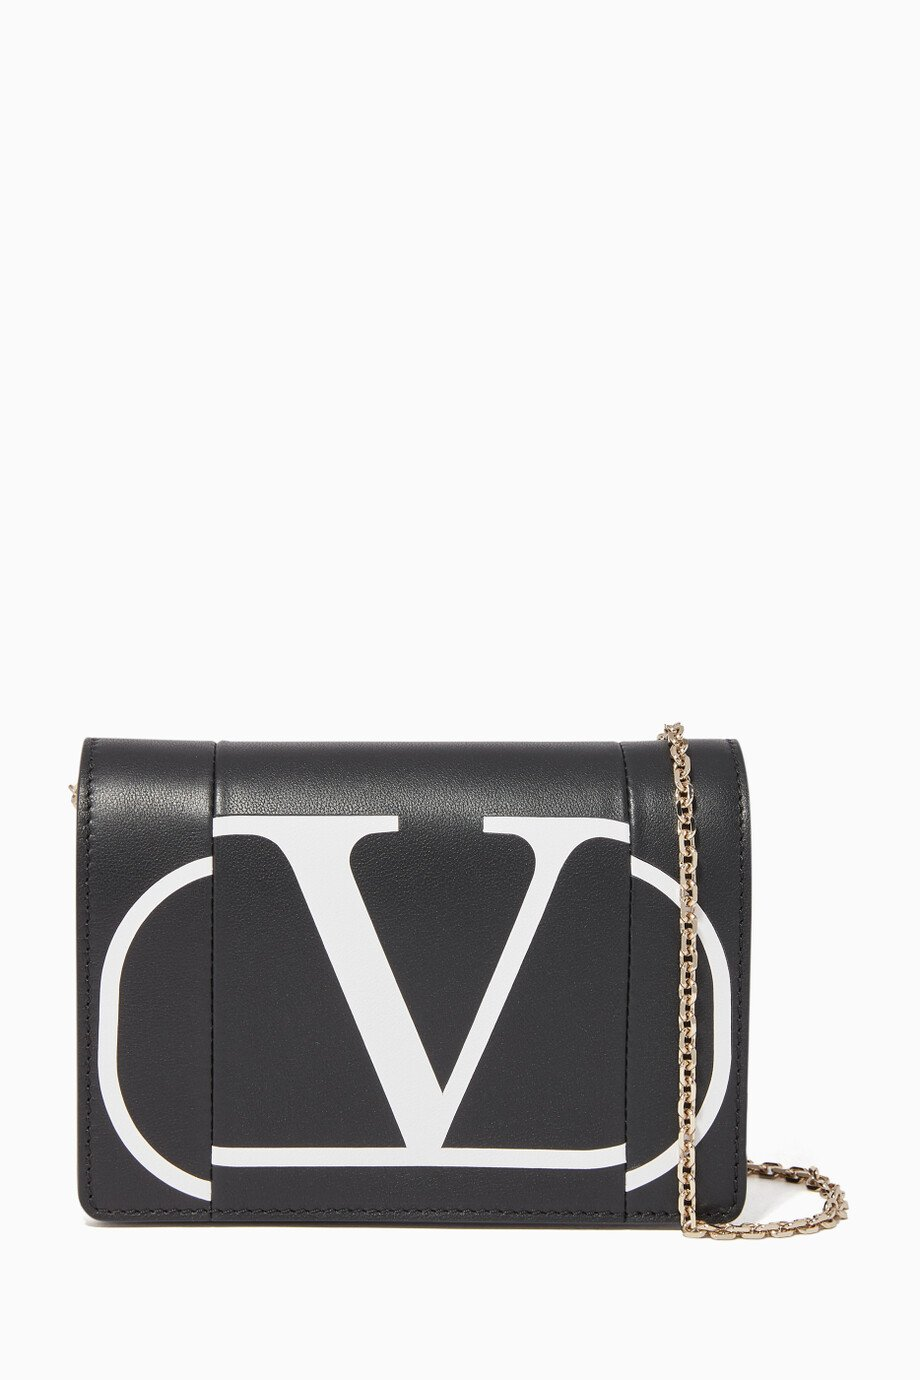 8c0b088070 Shop Valentino Black Escape Logo Leather Wallet for Women | Ounass ...